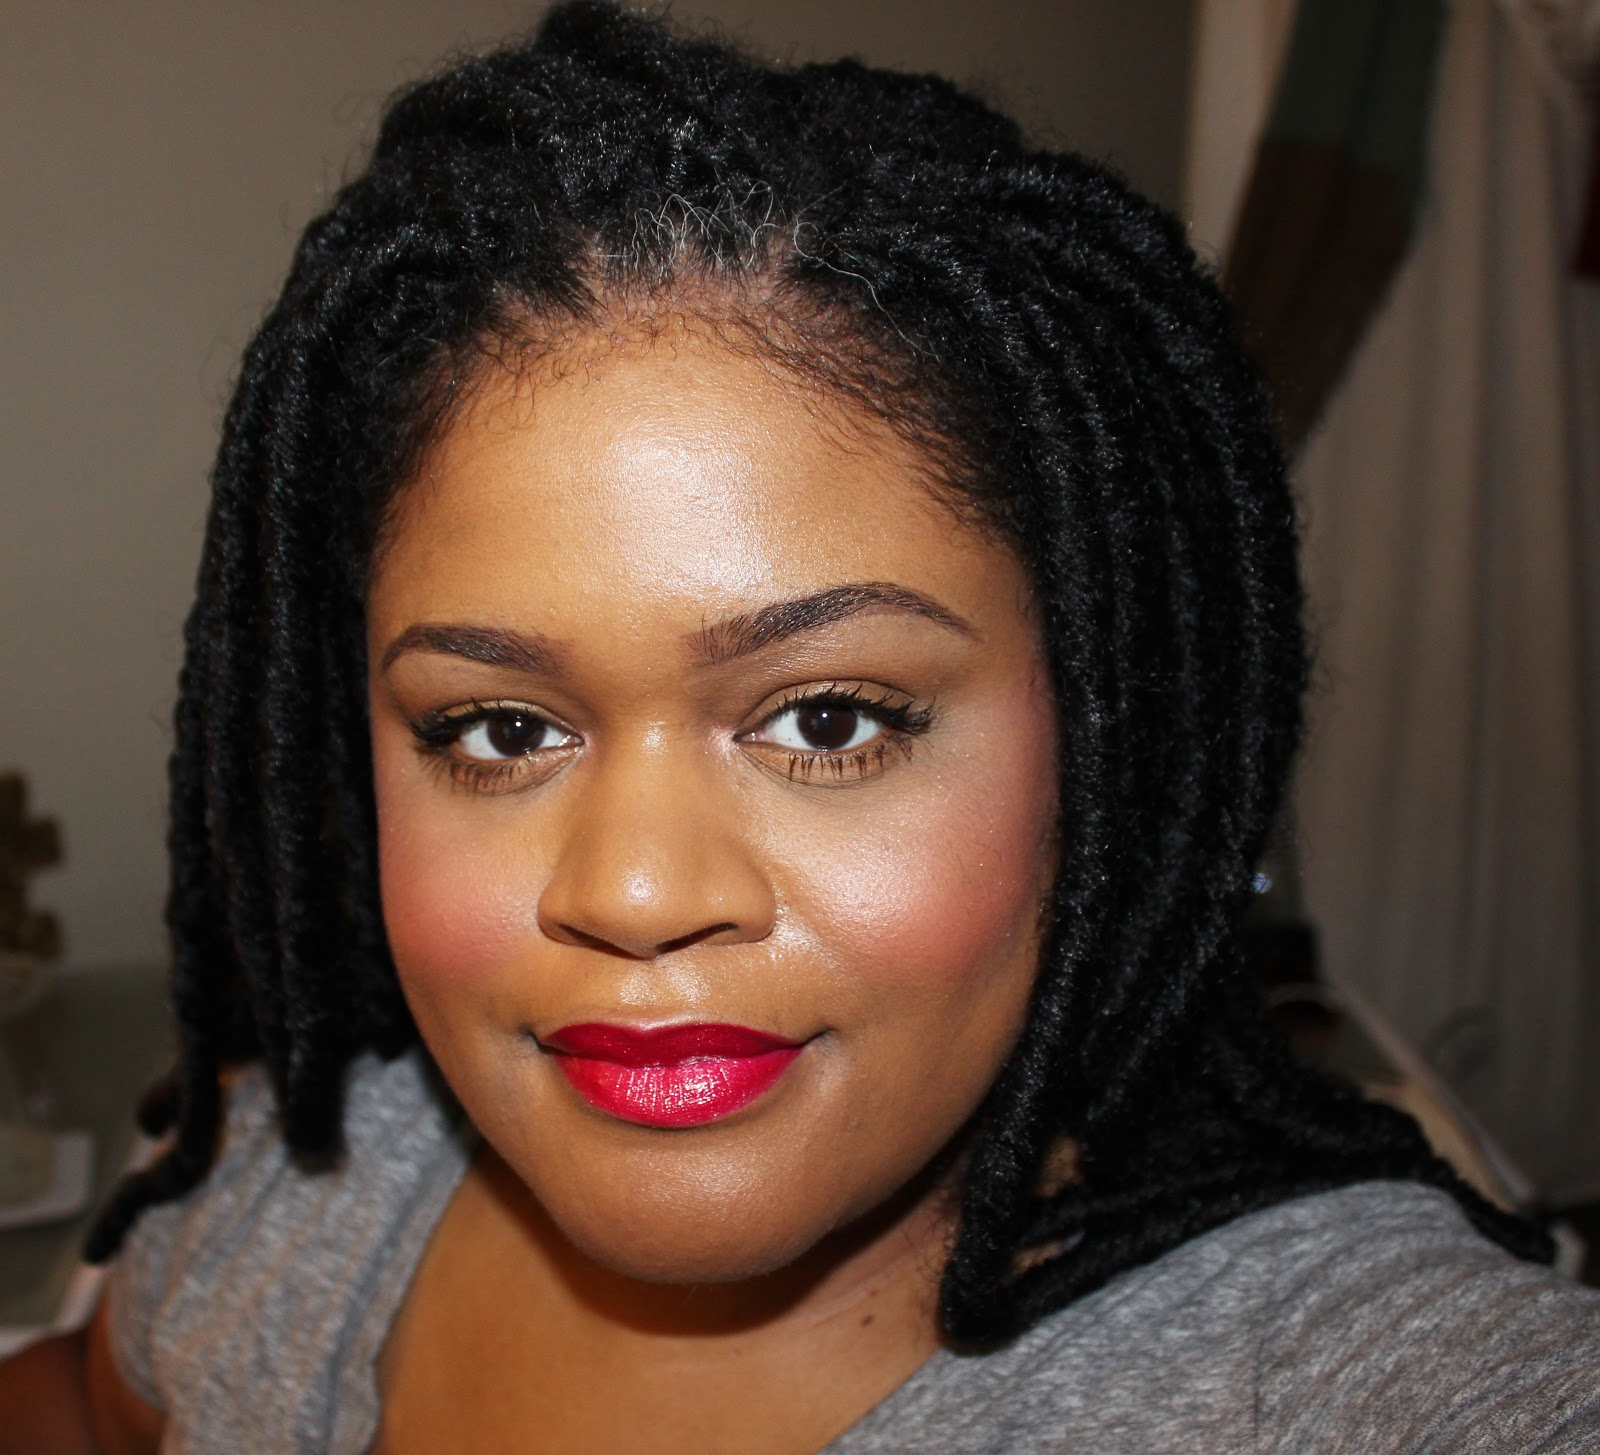 Crochet Faux Locs : FabEllis: Natural Hair Are Crochet Faux Locs a Must Try Protective ...